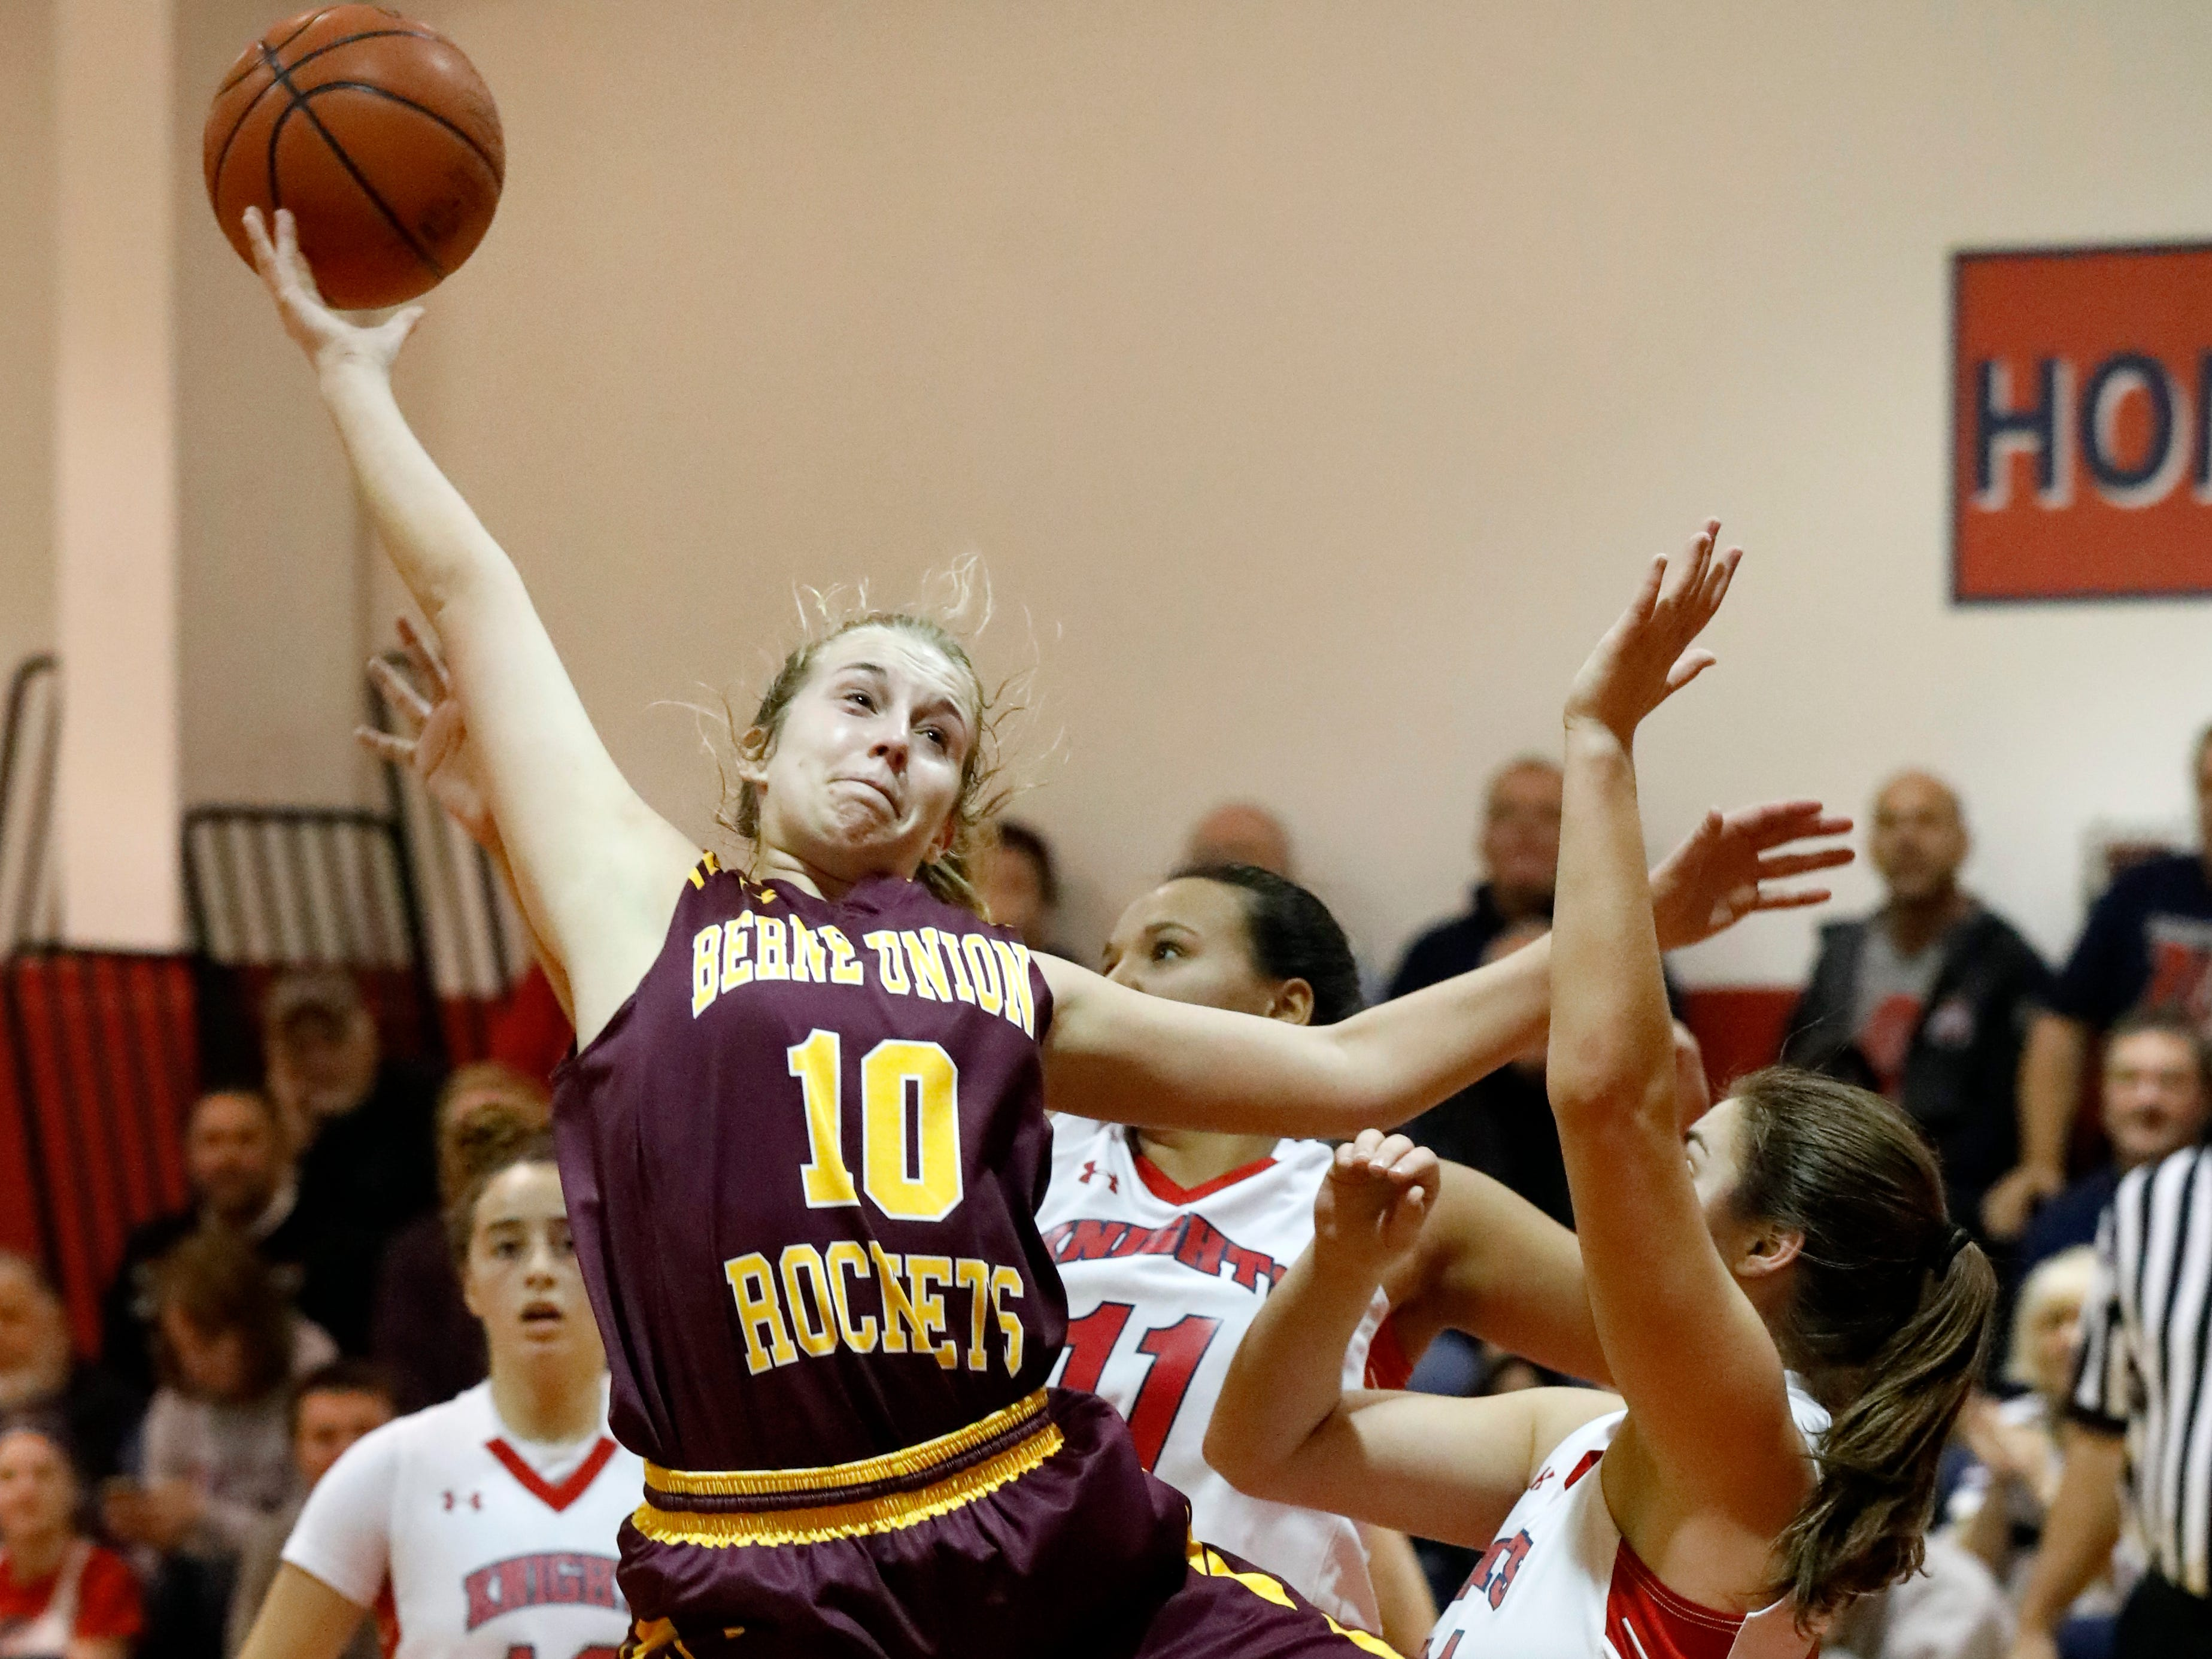 Berne Union's Lauren Nemeth grabs a rebound during Friday night's game, Dec. 21, 2018, against Fairfield Christian at Fairfield Christian Academy in Lancaster. The Knights defeated the Rockets 53-38.